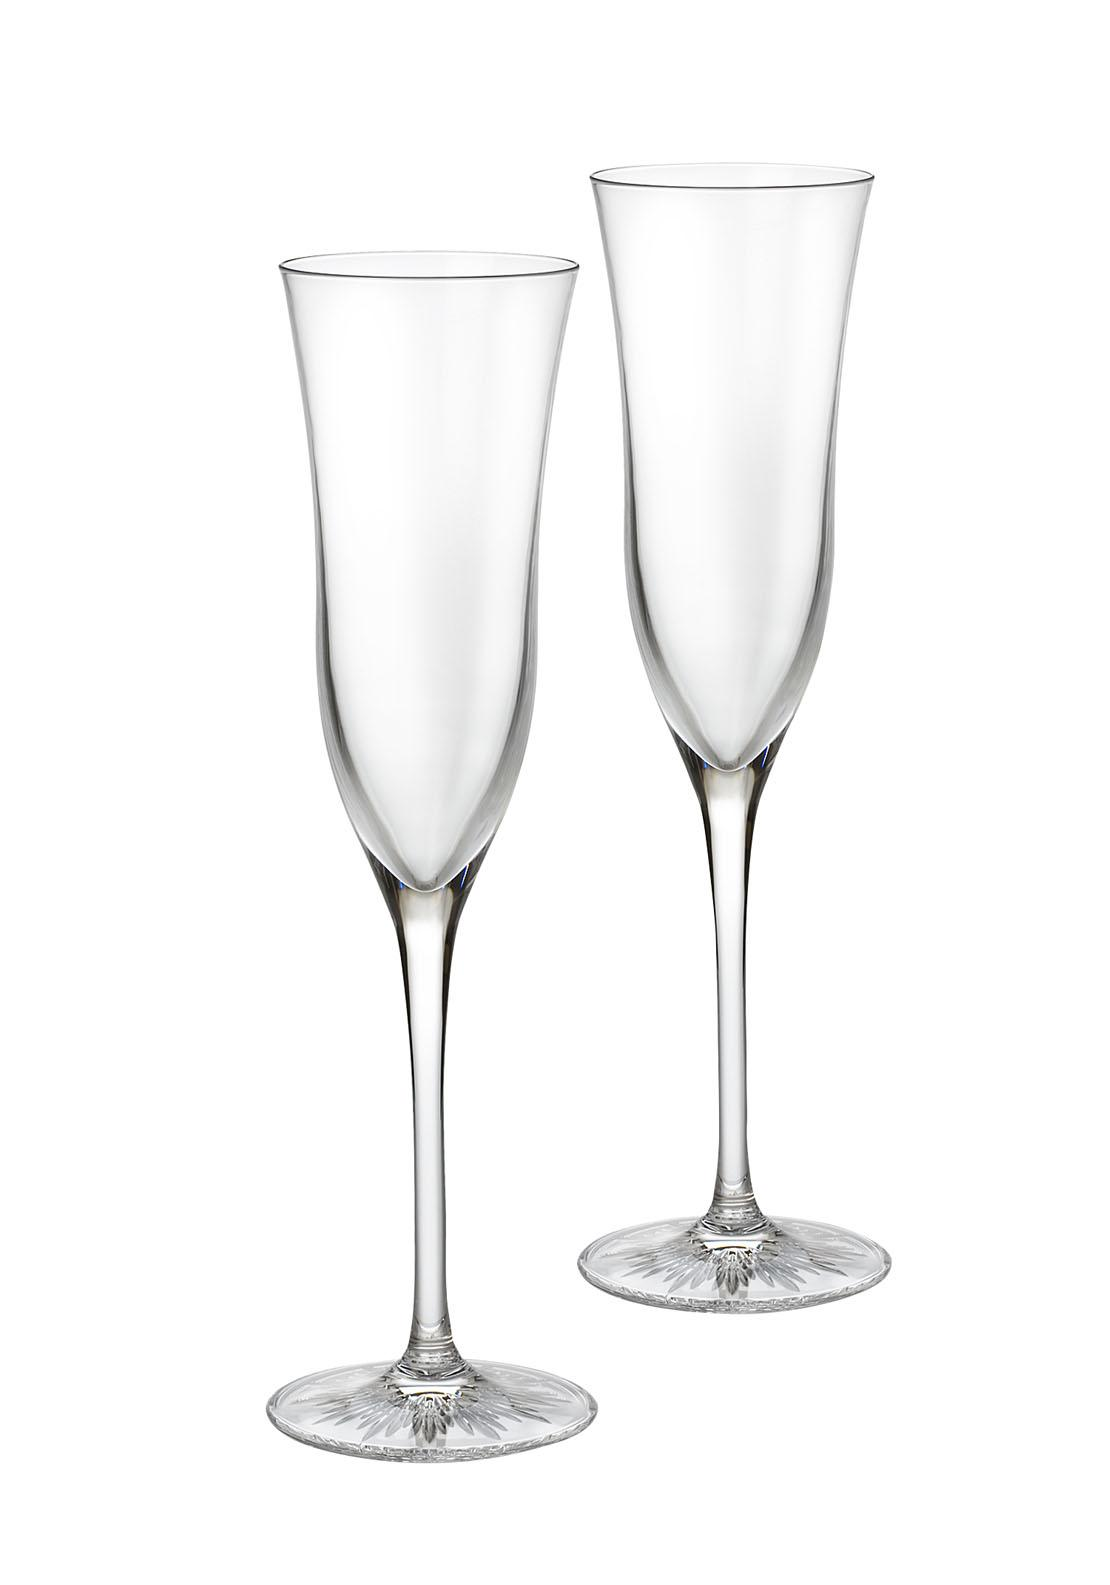 Waterford Crystal Champagne Flute, Pair